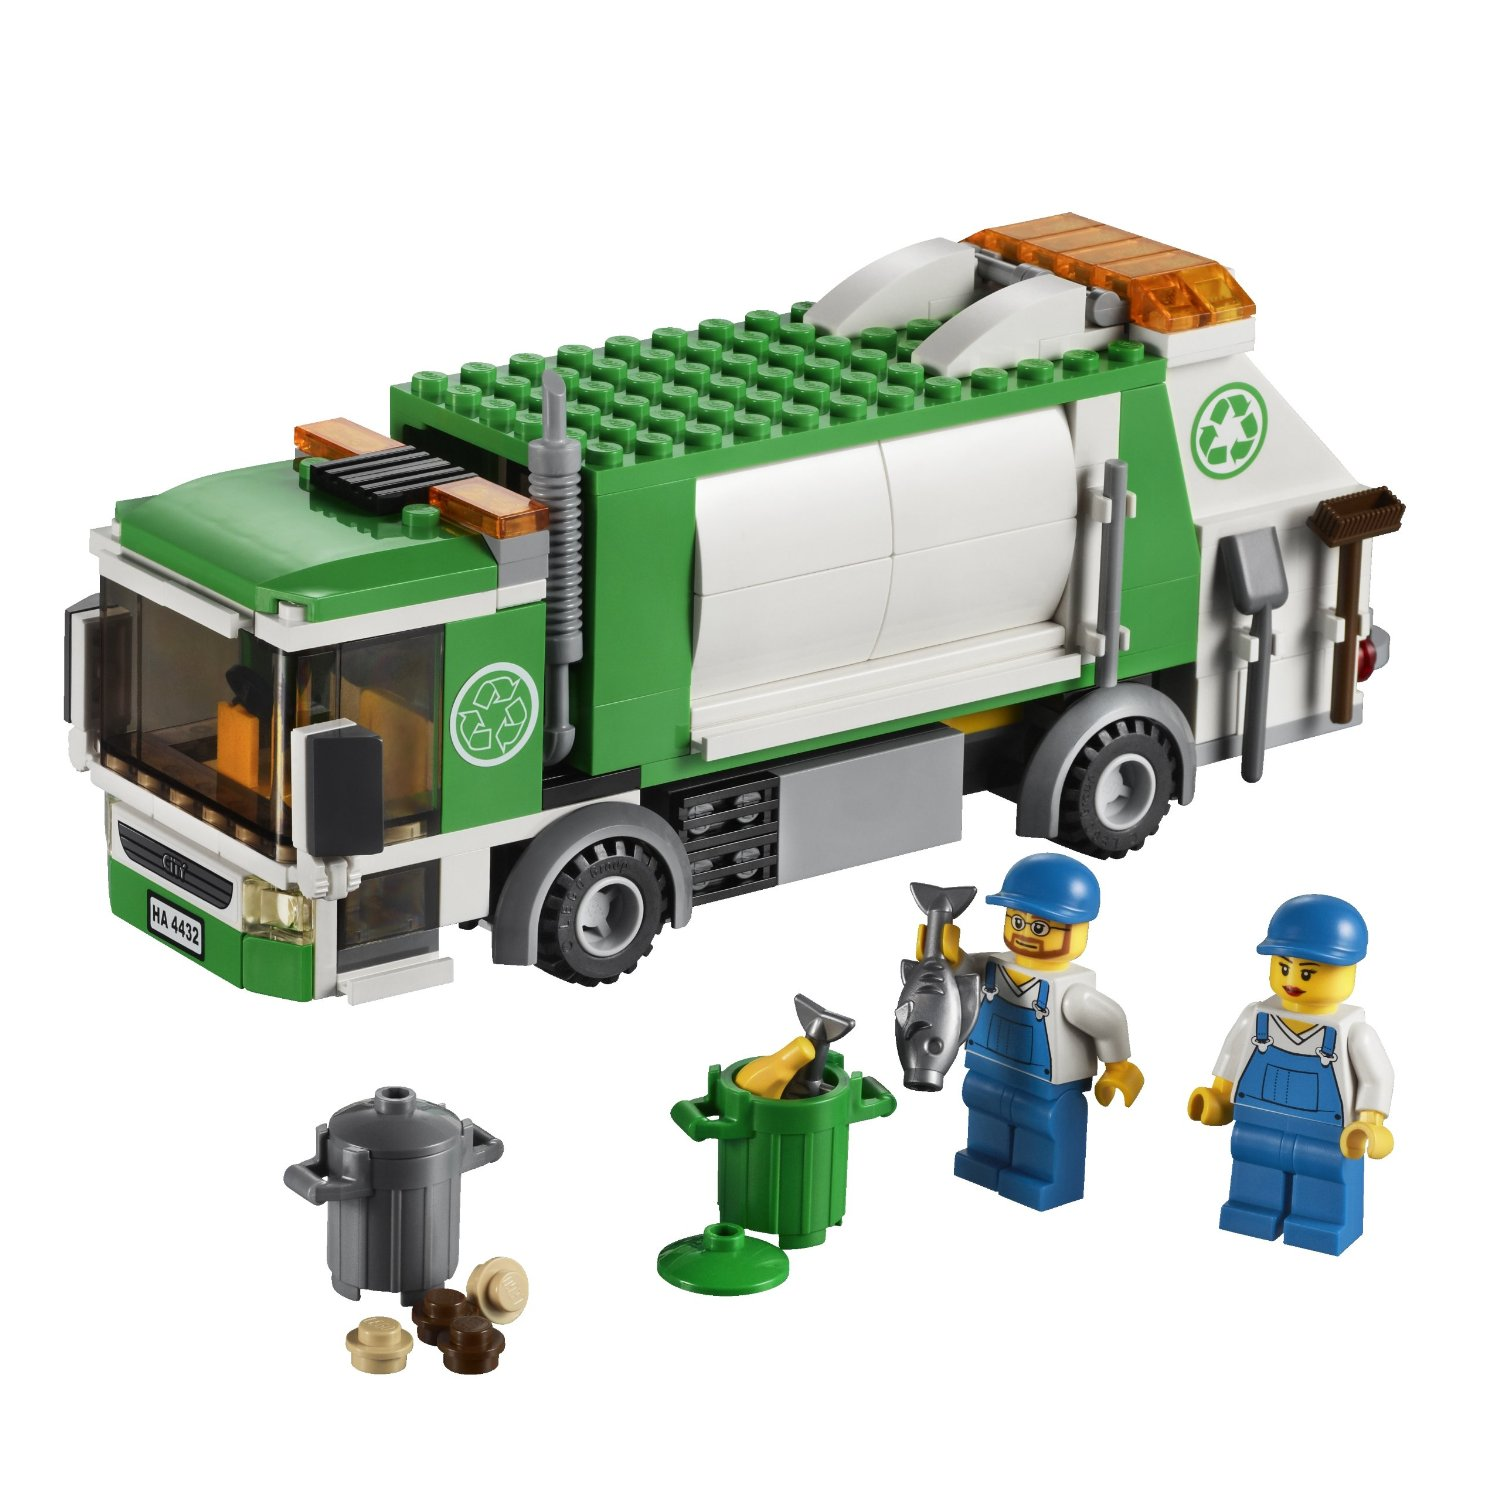 4432 Le Camion Poubelle Wiki Lego Fandom Powered By Wikia